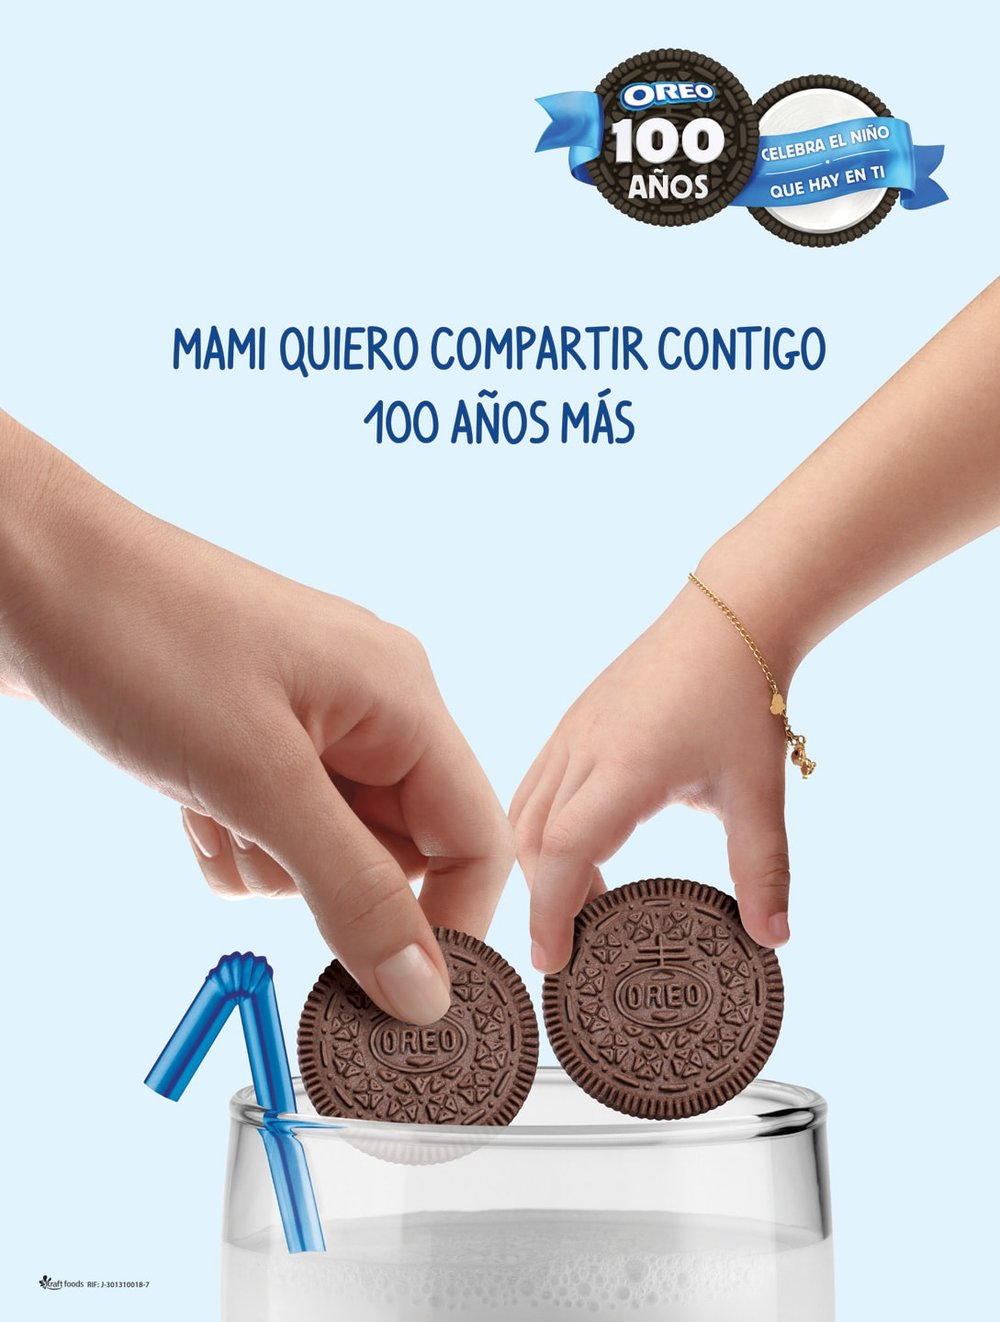 food-advertising-photograper-miami-marcel-boldu-oreo.jpg